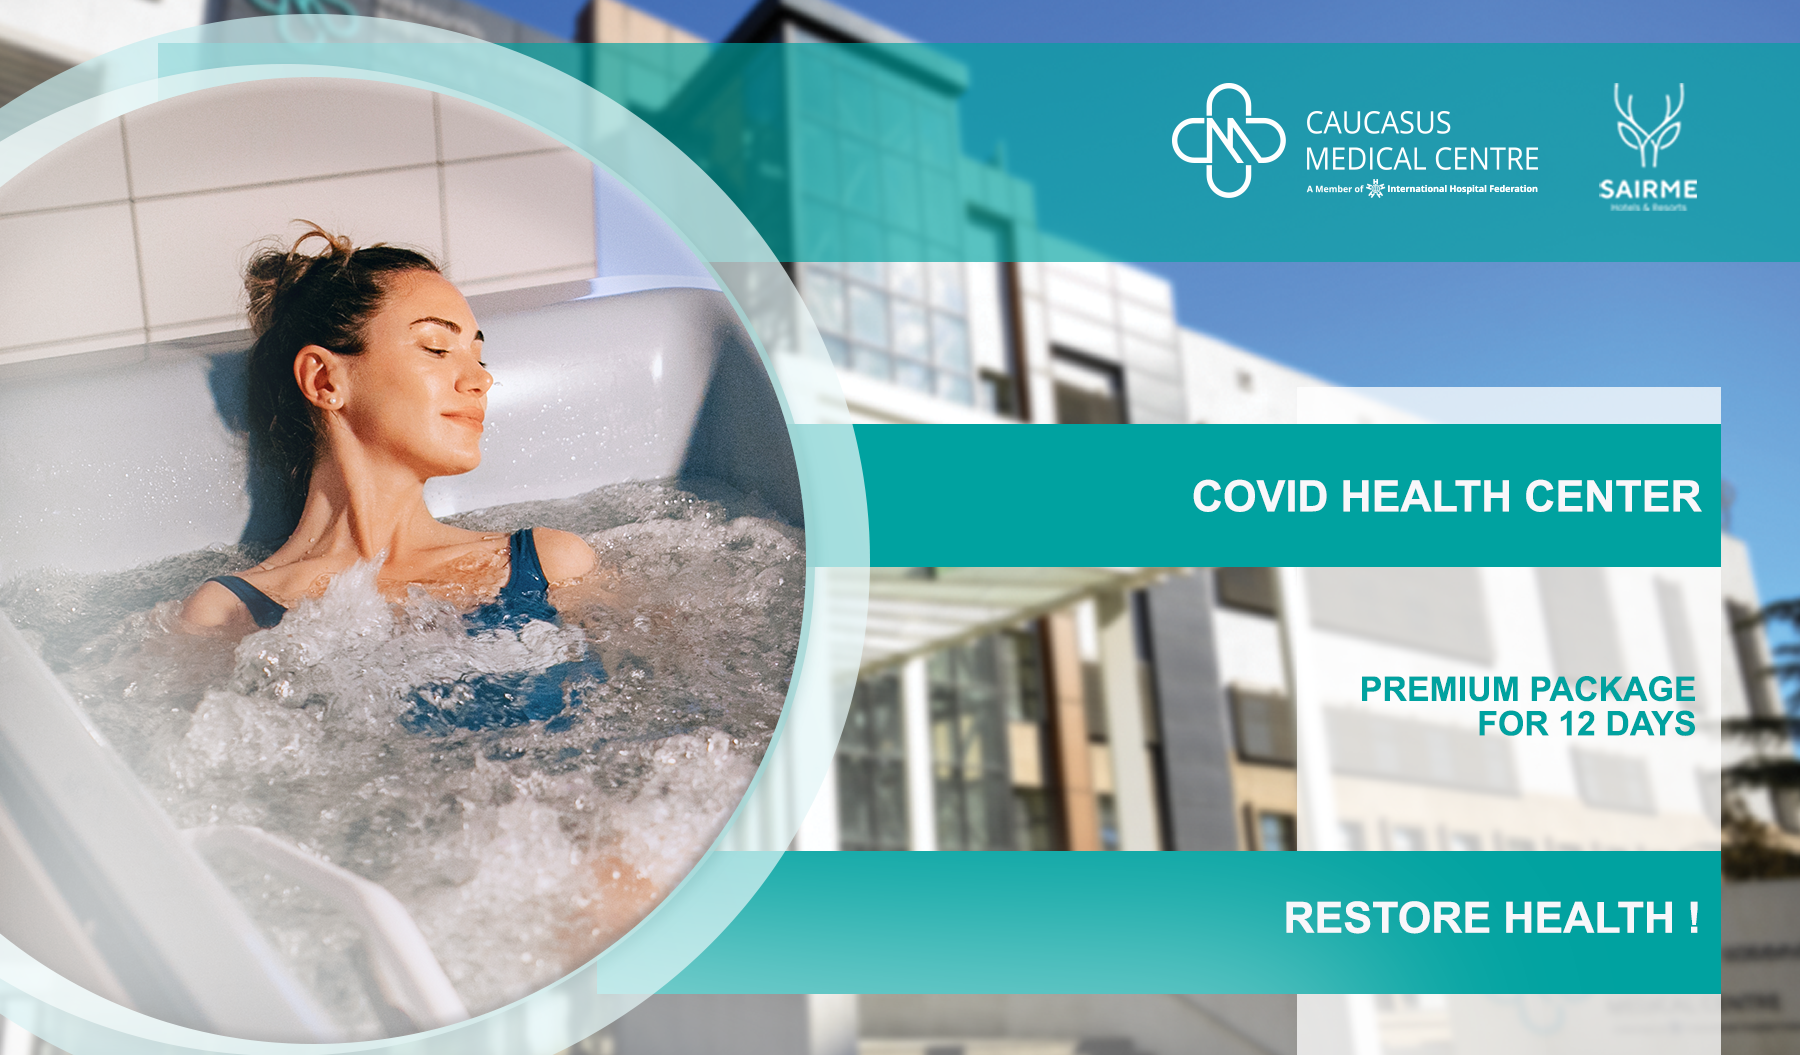 Rehabilitation after Covid - for 12 days